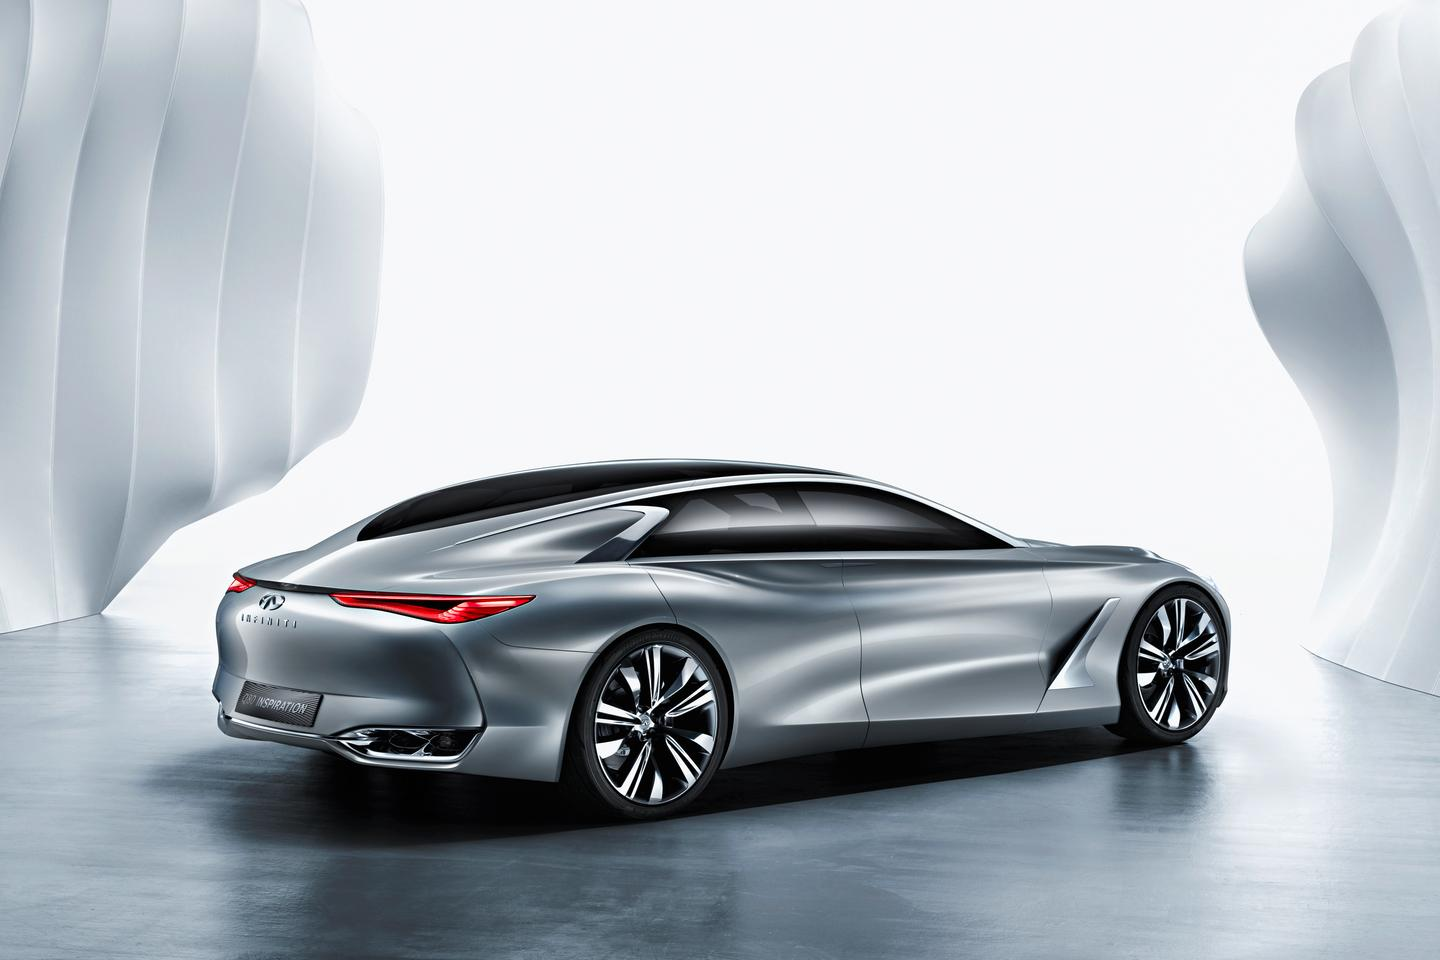 Featuring an advanced adaptive suspension system and a strong, light chassis, the Q80 also uses acoustic glass throughout the car in an effort to deliver a premium driving experience